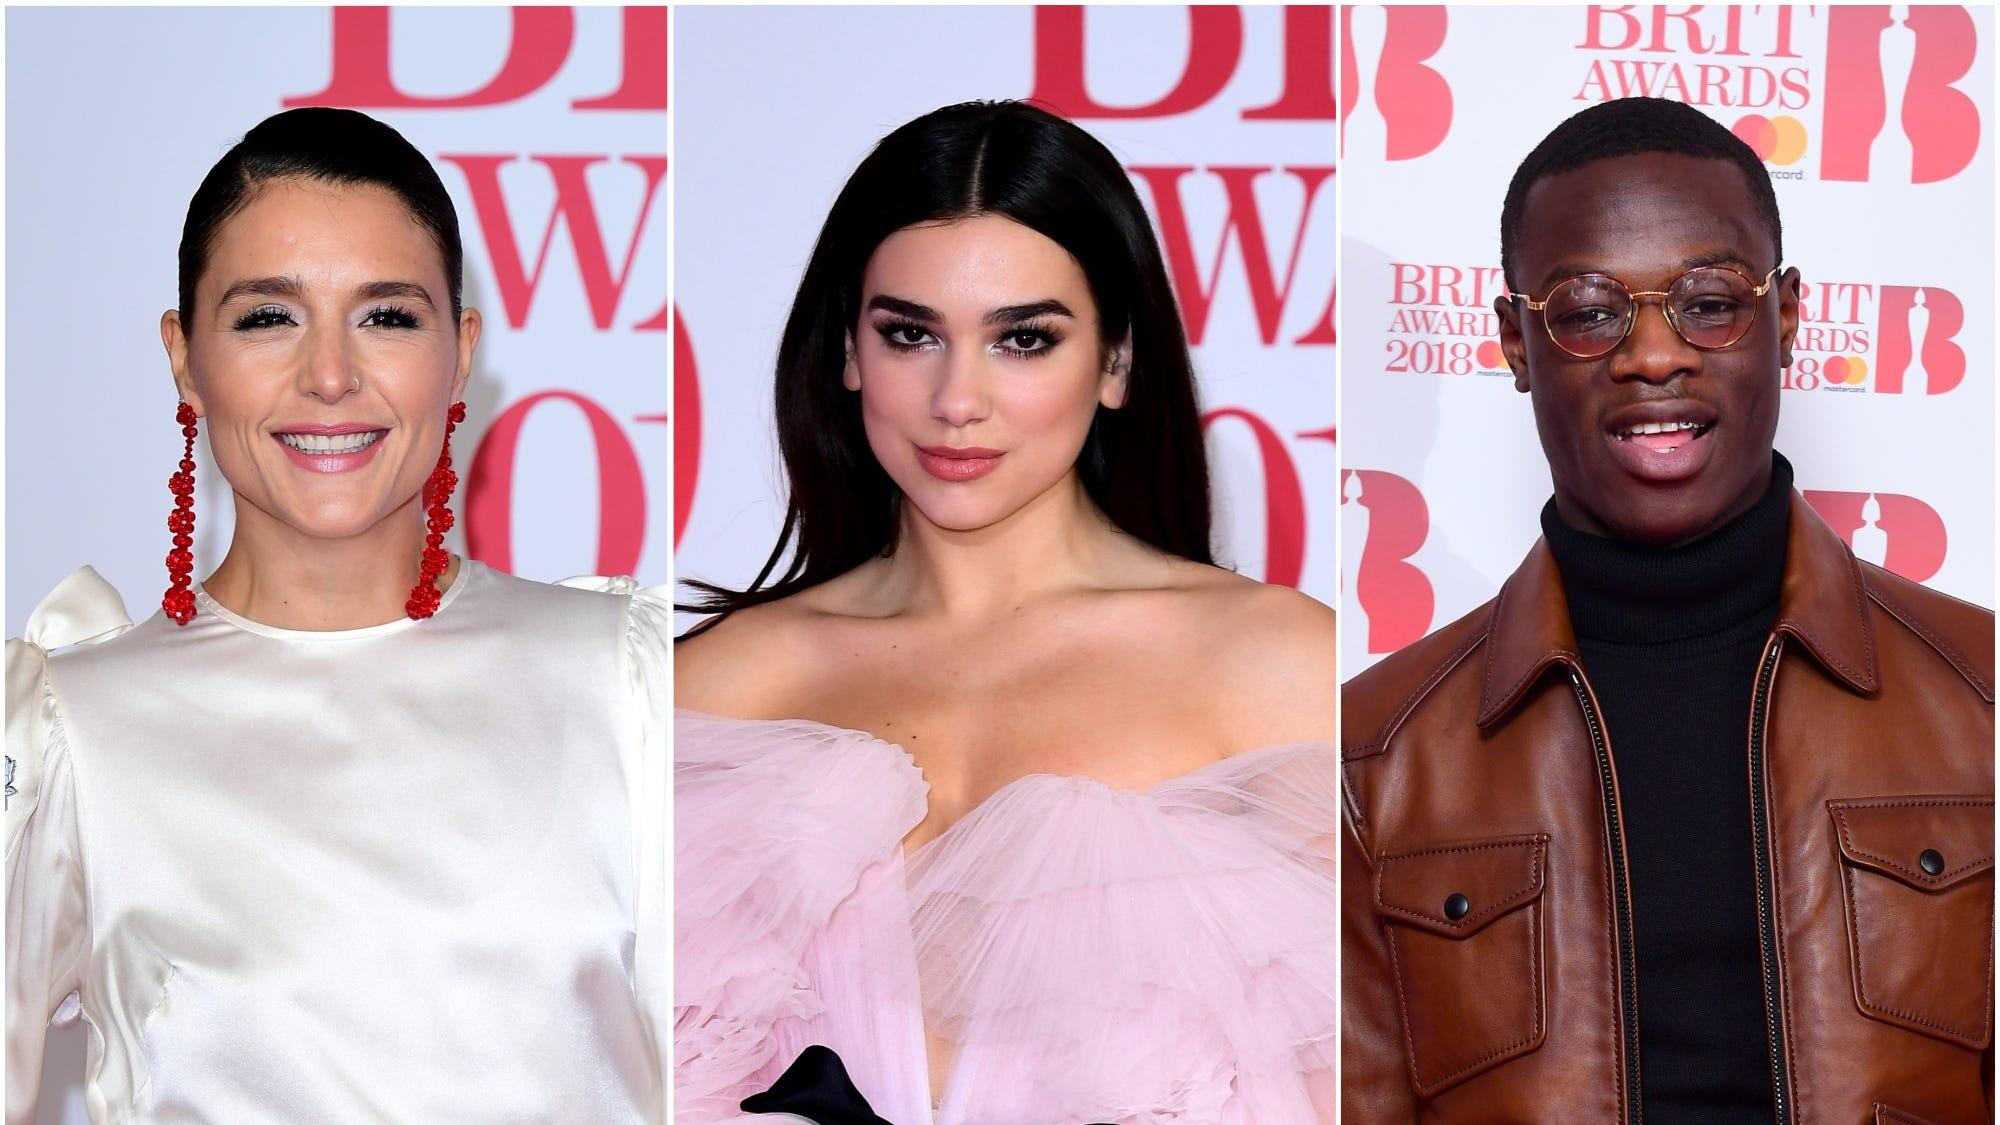 Brit Awards 2021: Who are the nominees?